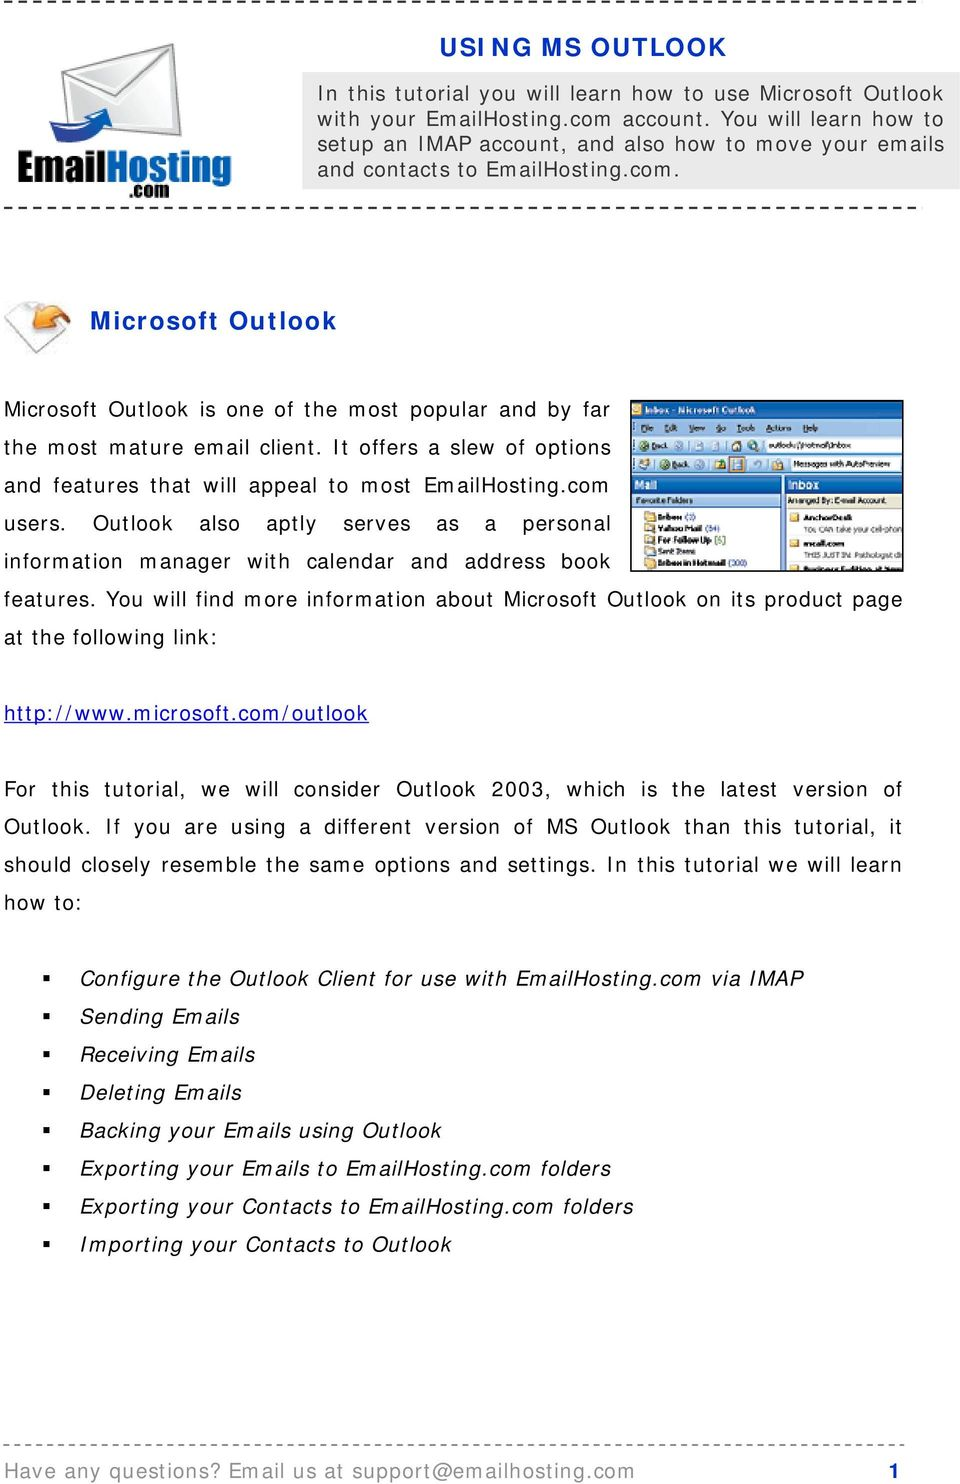 Microsoft Outlook Microsoft Outlook is one of the most popular and by far the most mature email client. It offers a slew of options and features that will appeal to most EmailHosting.com users.